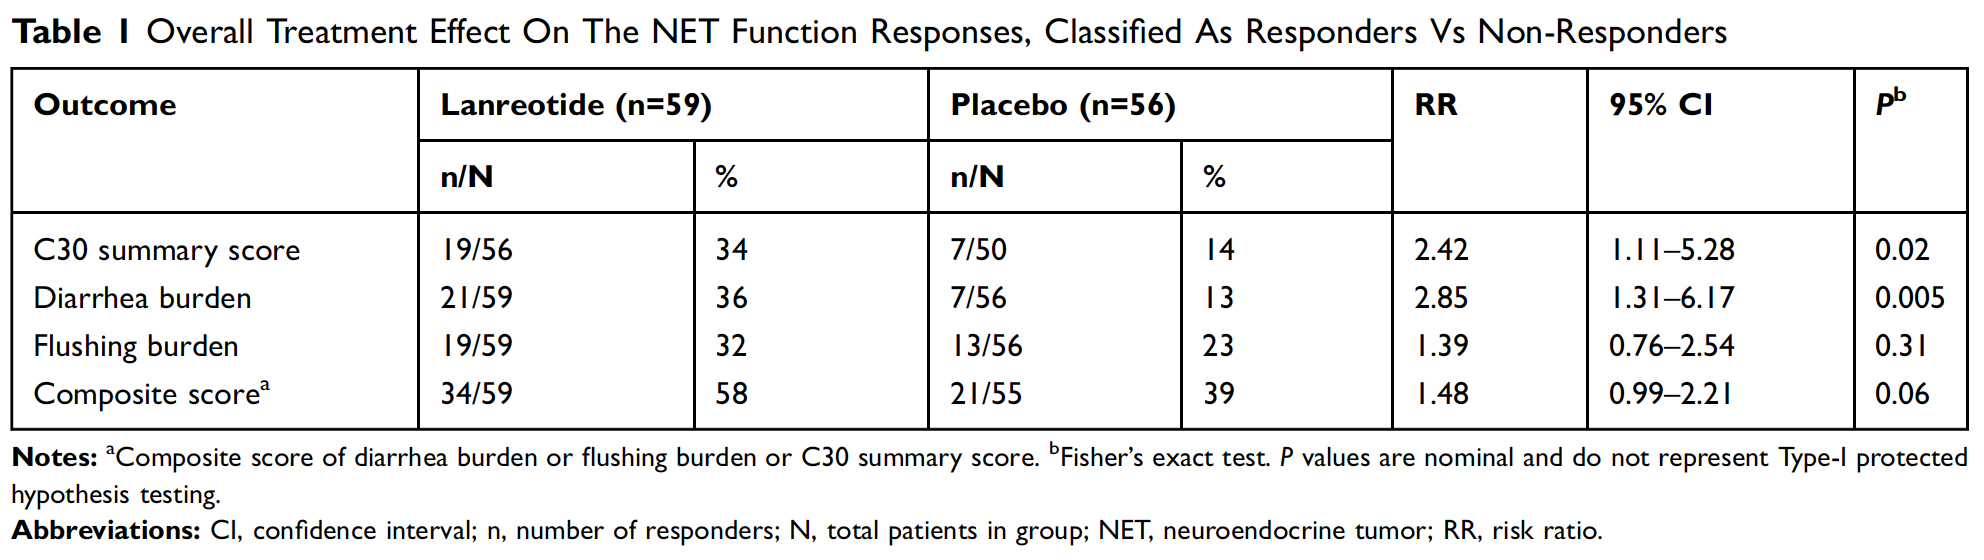 patient-outcomes-table-1